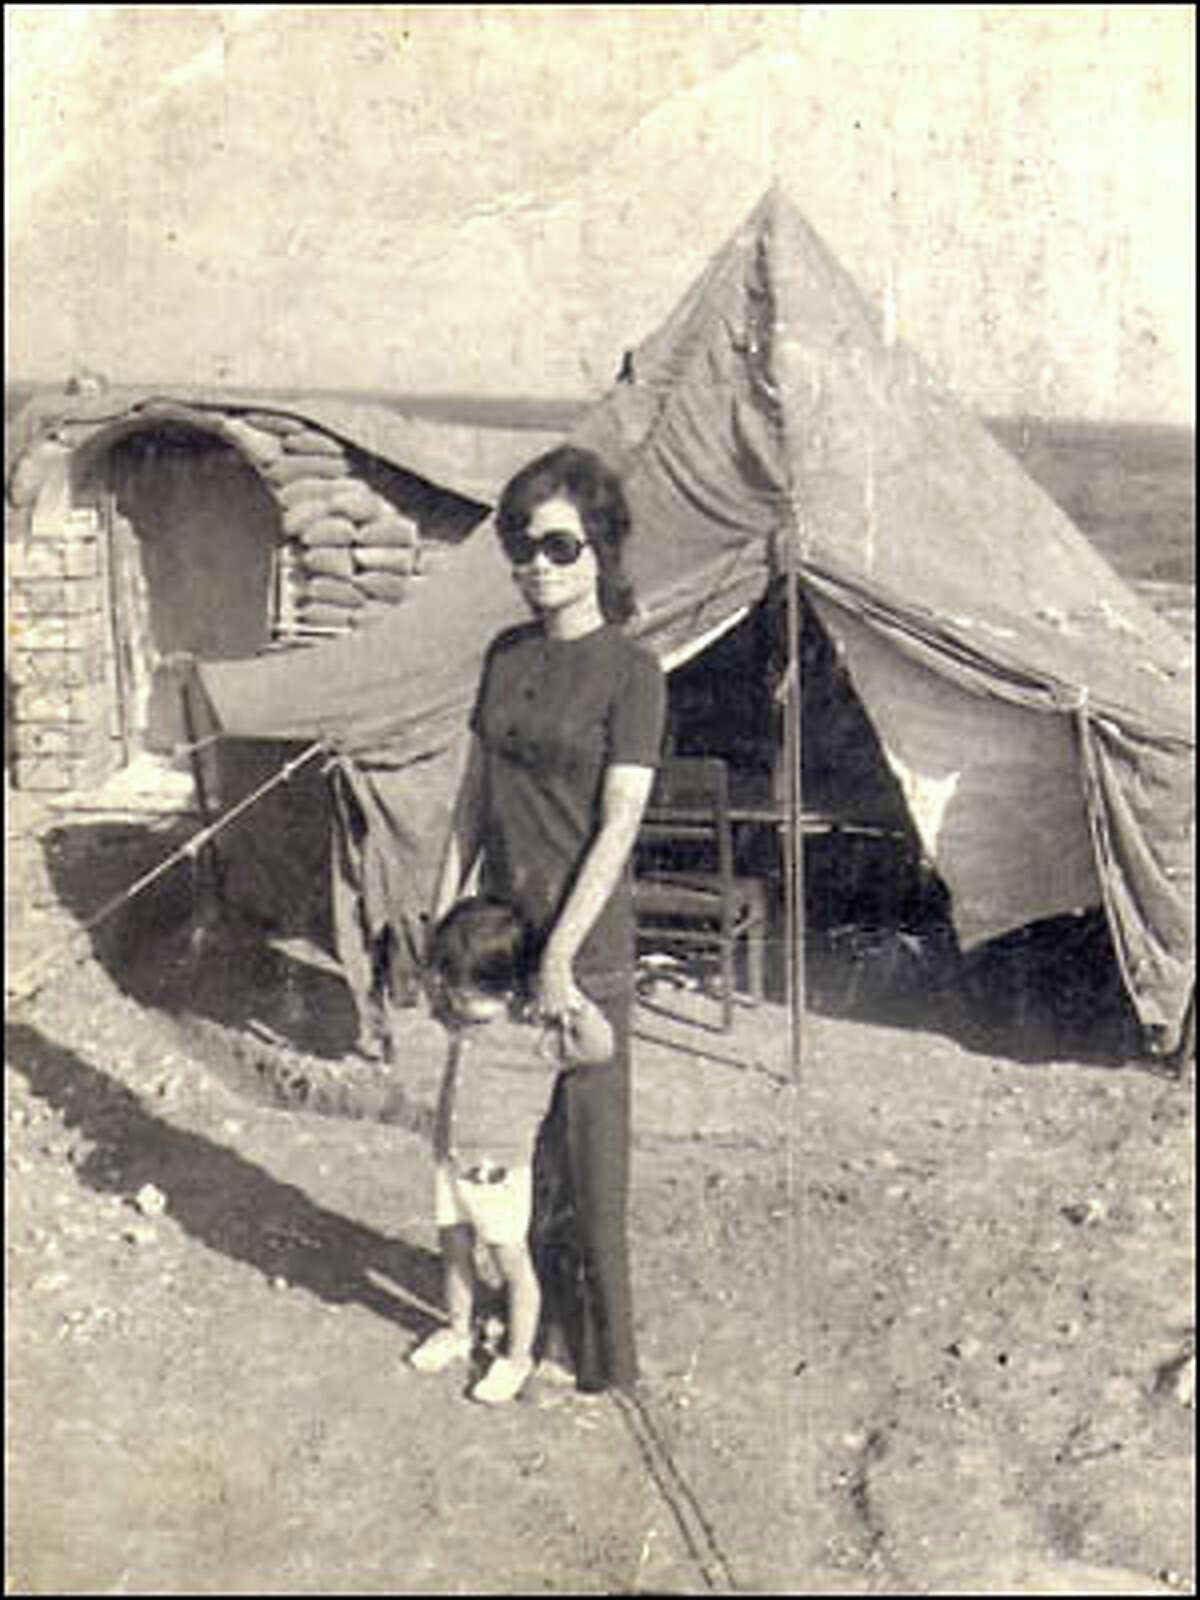 Sen often brought her children to see their father, Me, while he was stationed at army bases during the war. During one break in the fighting in 1972, Sen took 1-1/2-year-old Quyen to the Quang Tri Province.